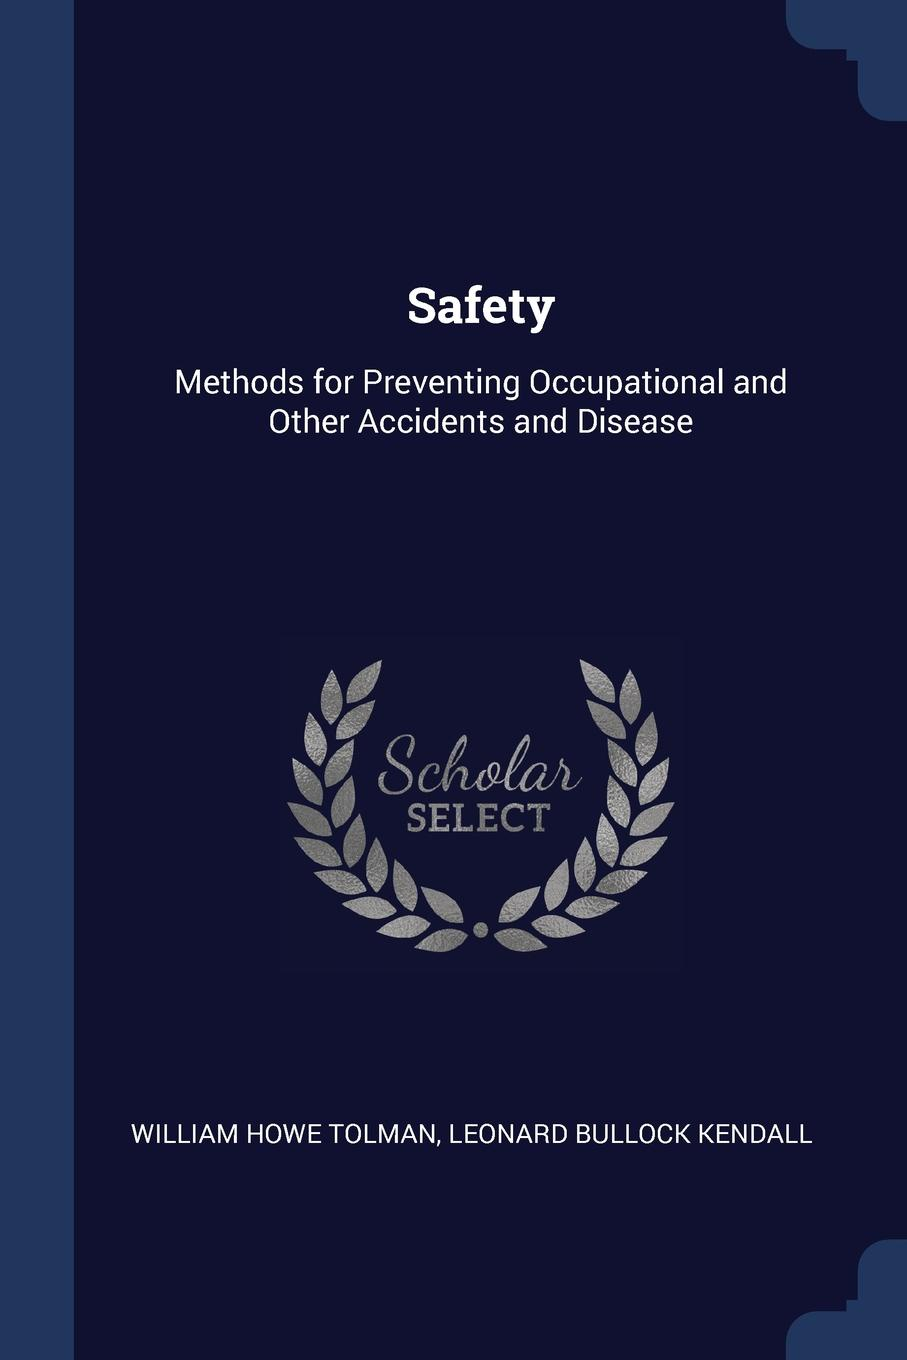 William Howe Tolman, Leonard Bullock Kendall Safety. Methods for Preventing Occupational and Other Accidents Disease